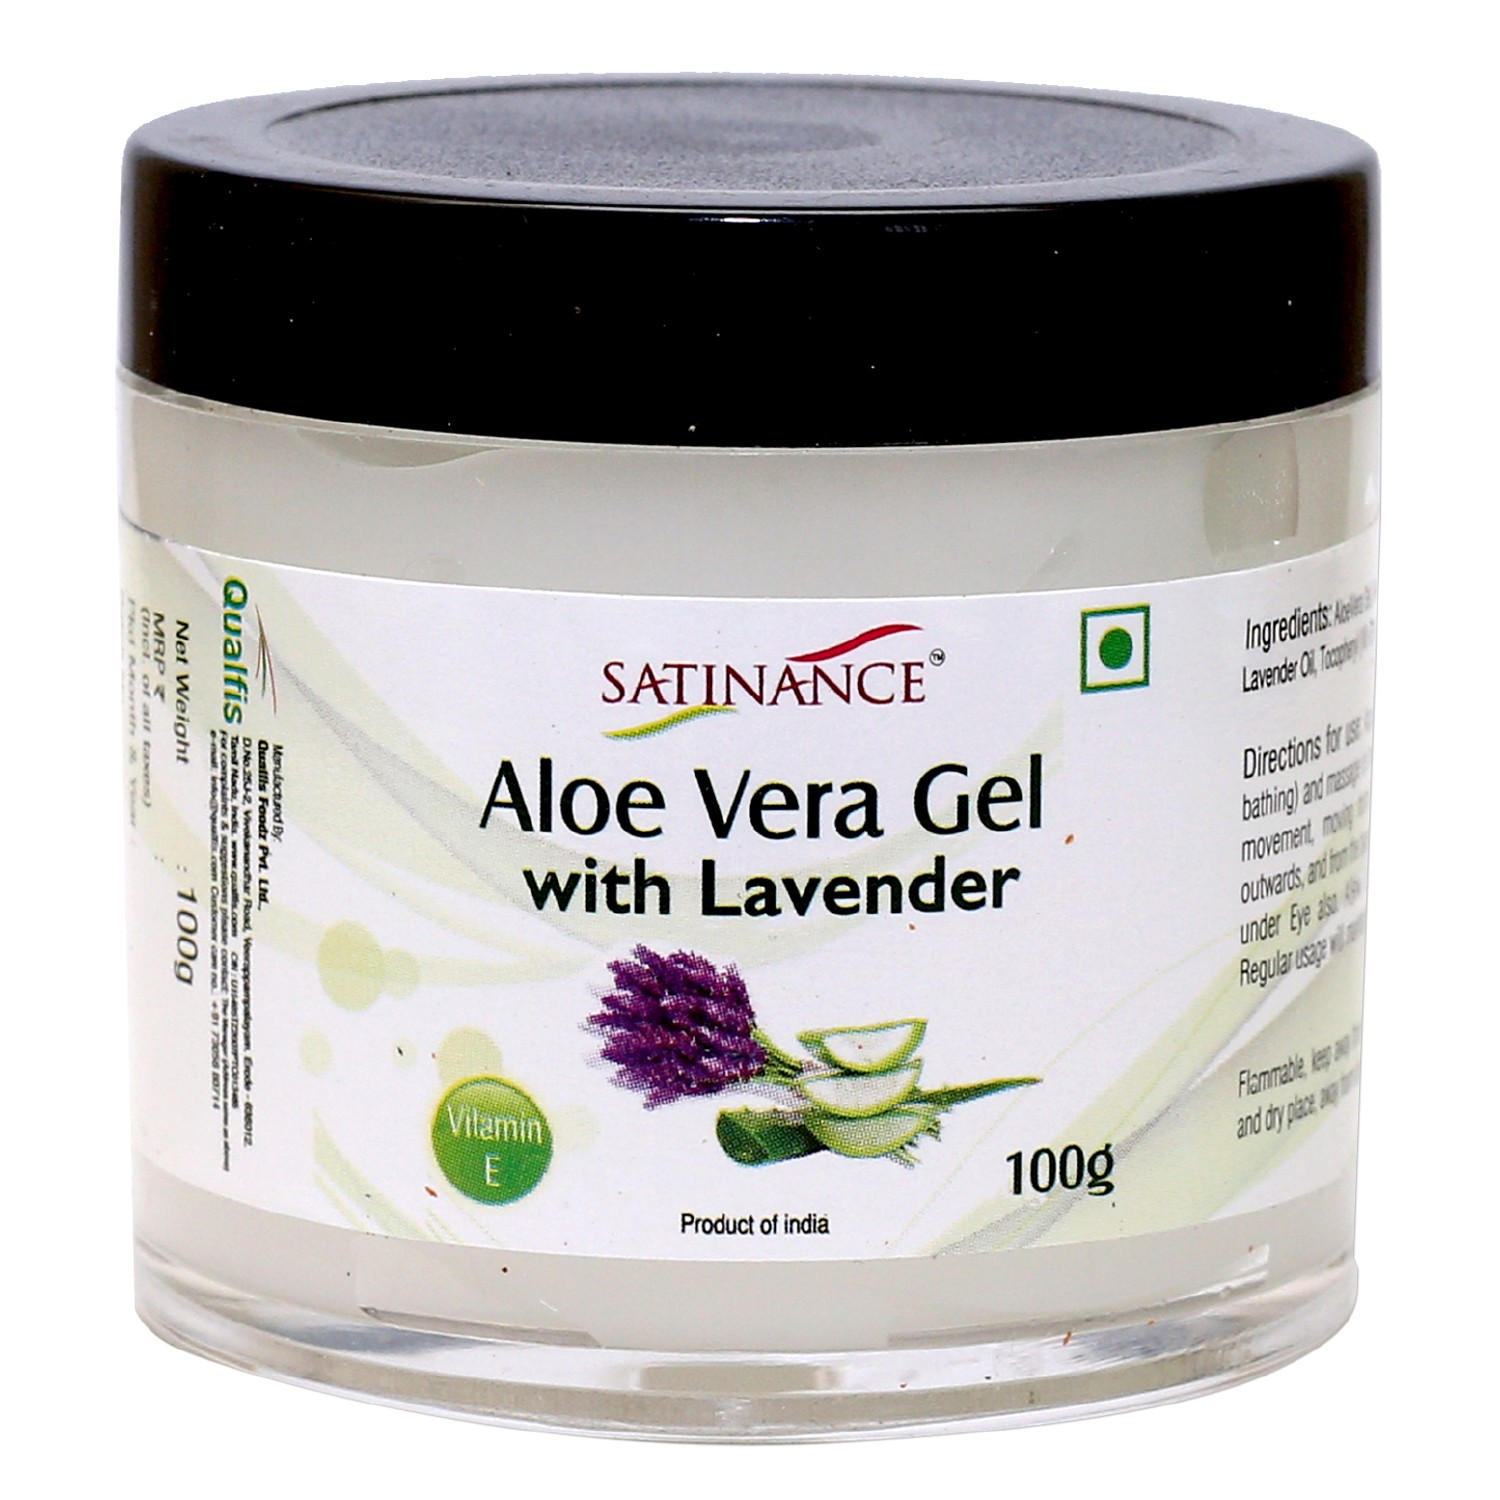 Aloe Vera Gel With Lavender for Face – 100g ( With Vitamin E)